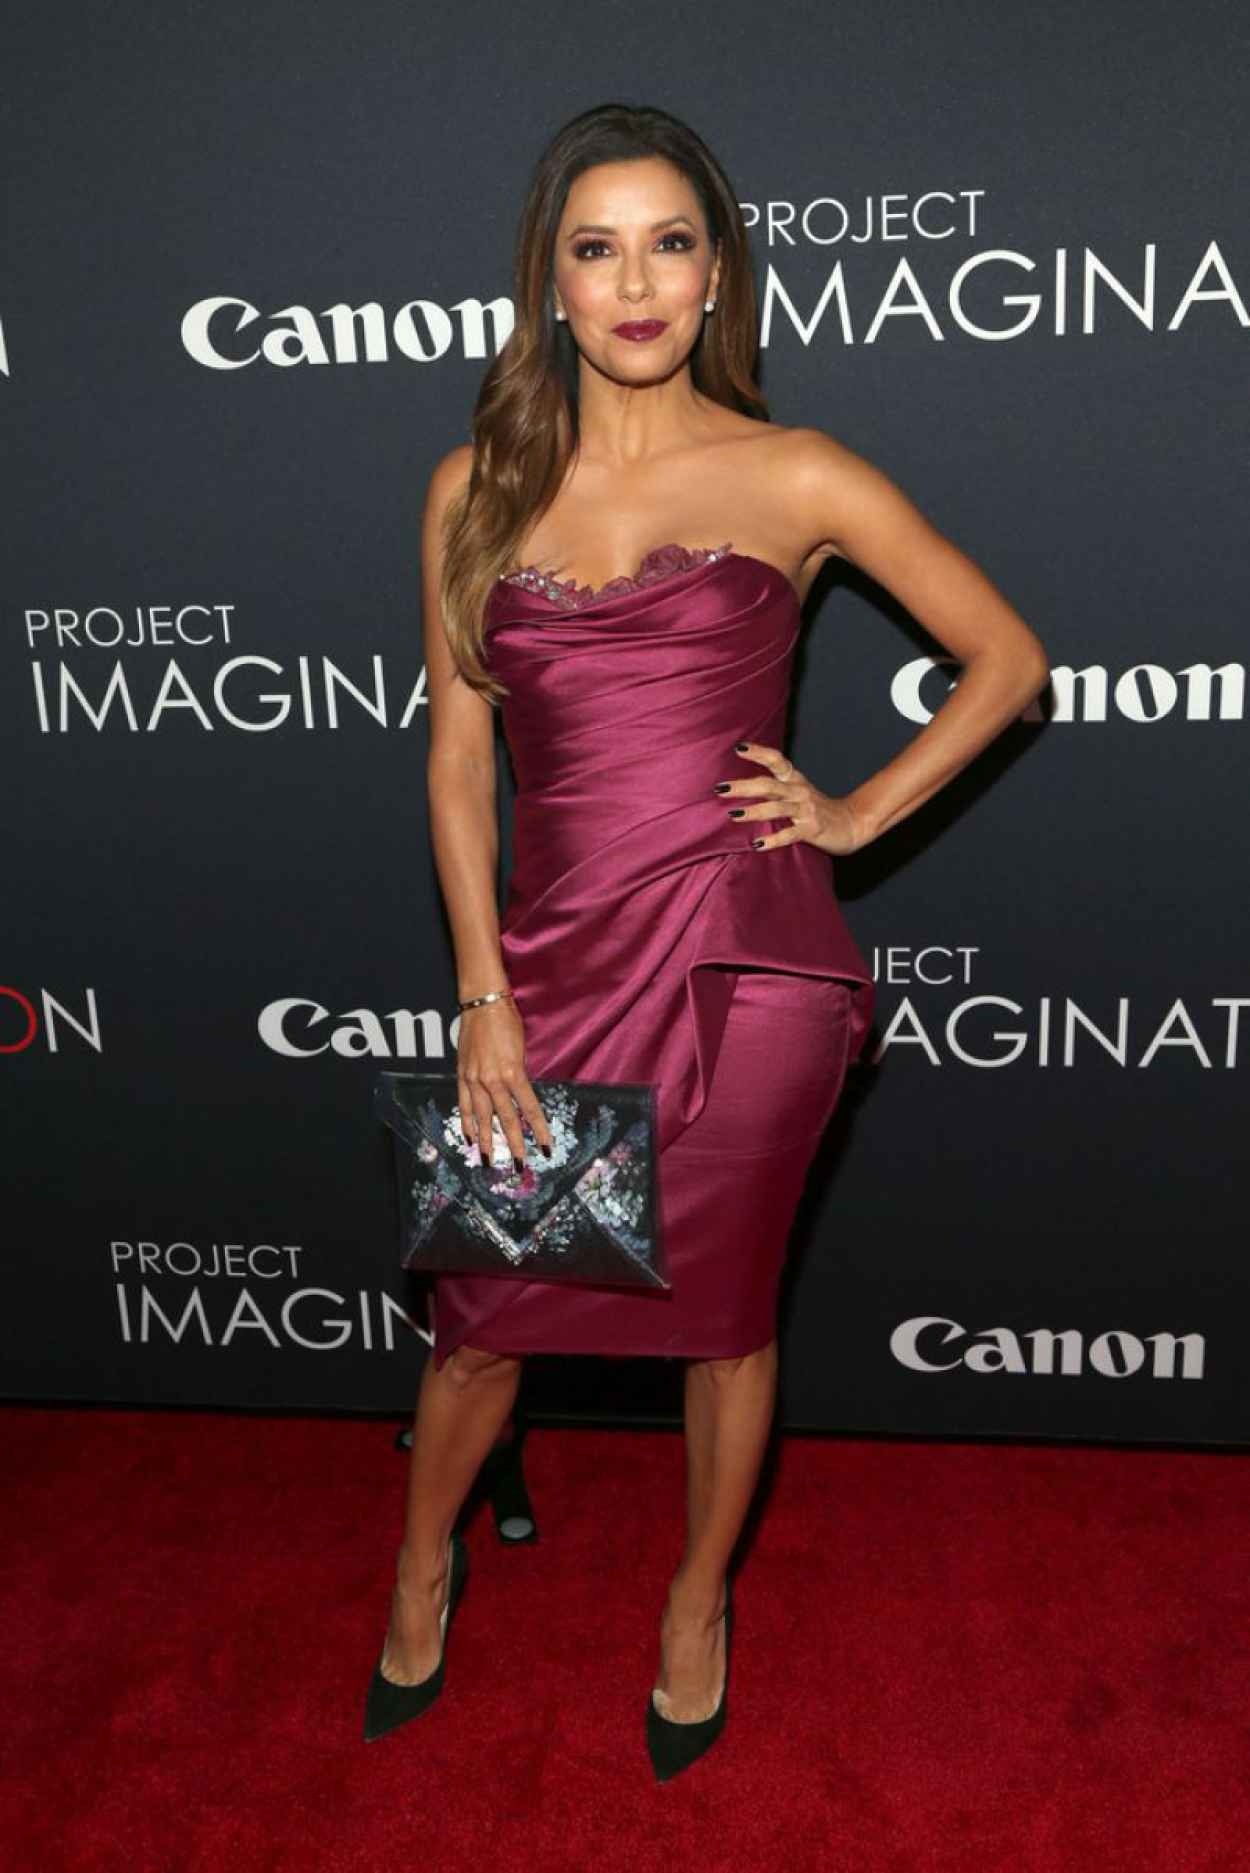 Eva Longoria at Canons Project Imaginat10n Film Festival-1